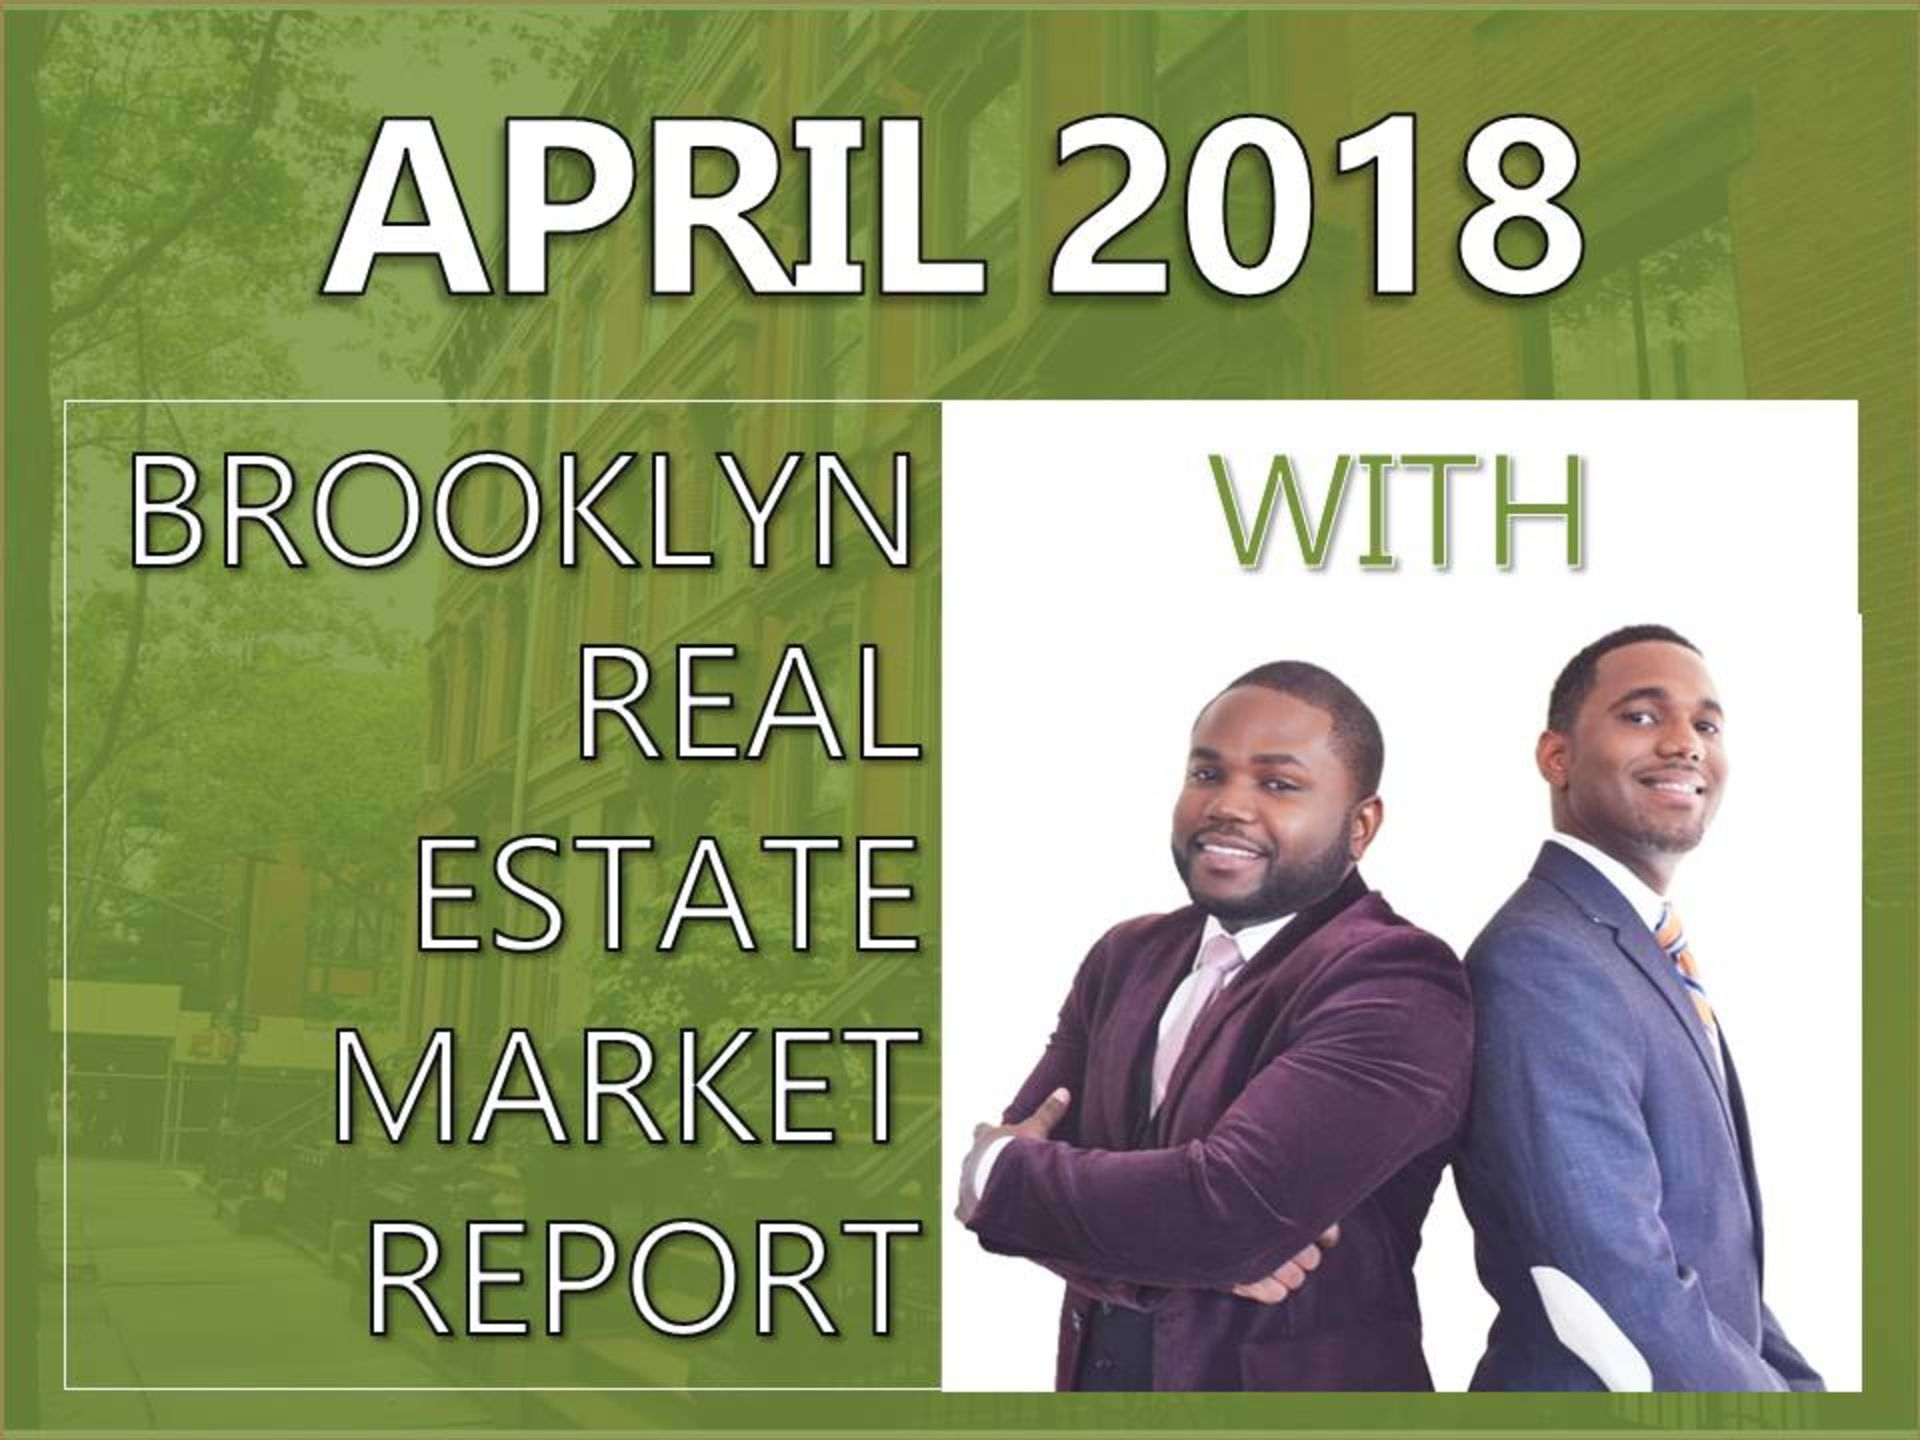 April 2018 Brooklyn Real Estate Market Report